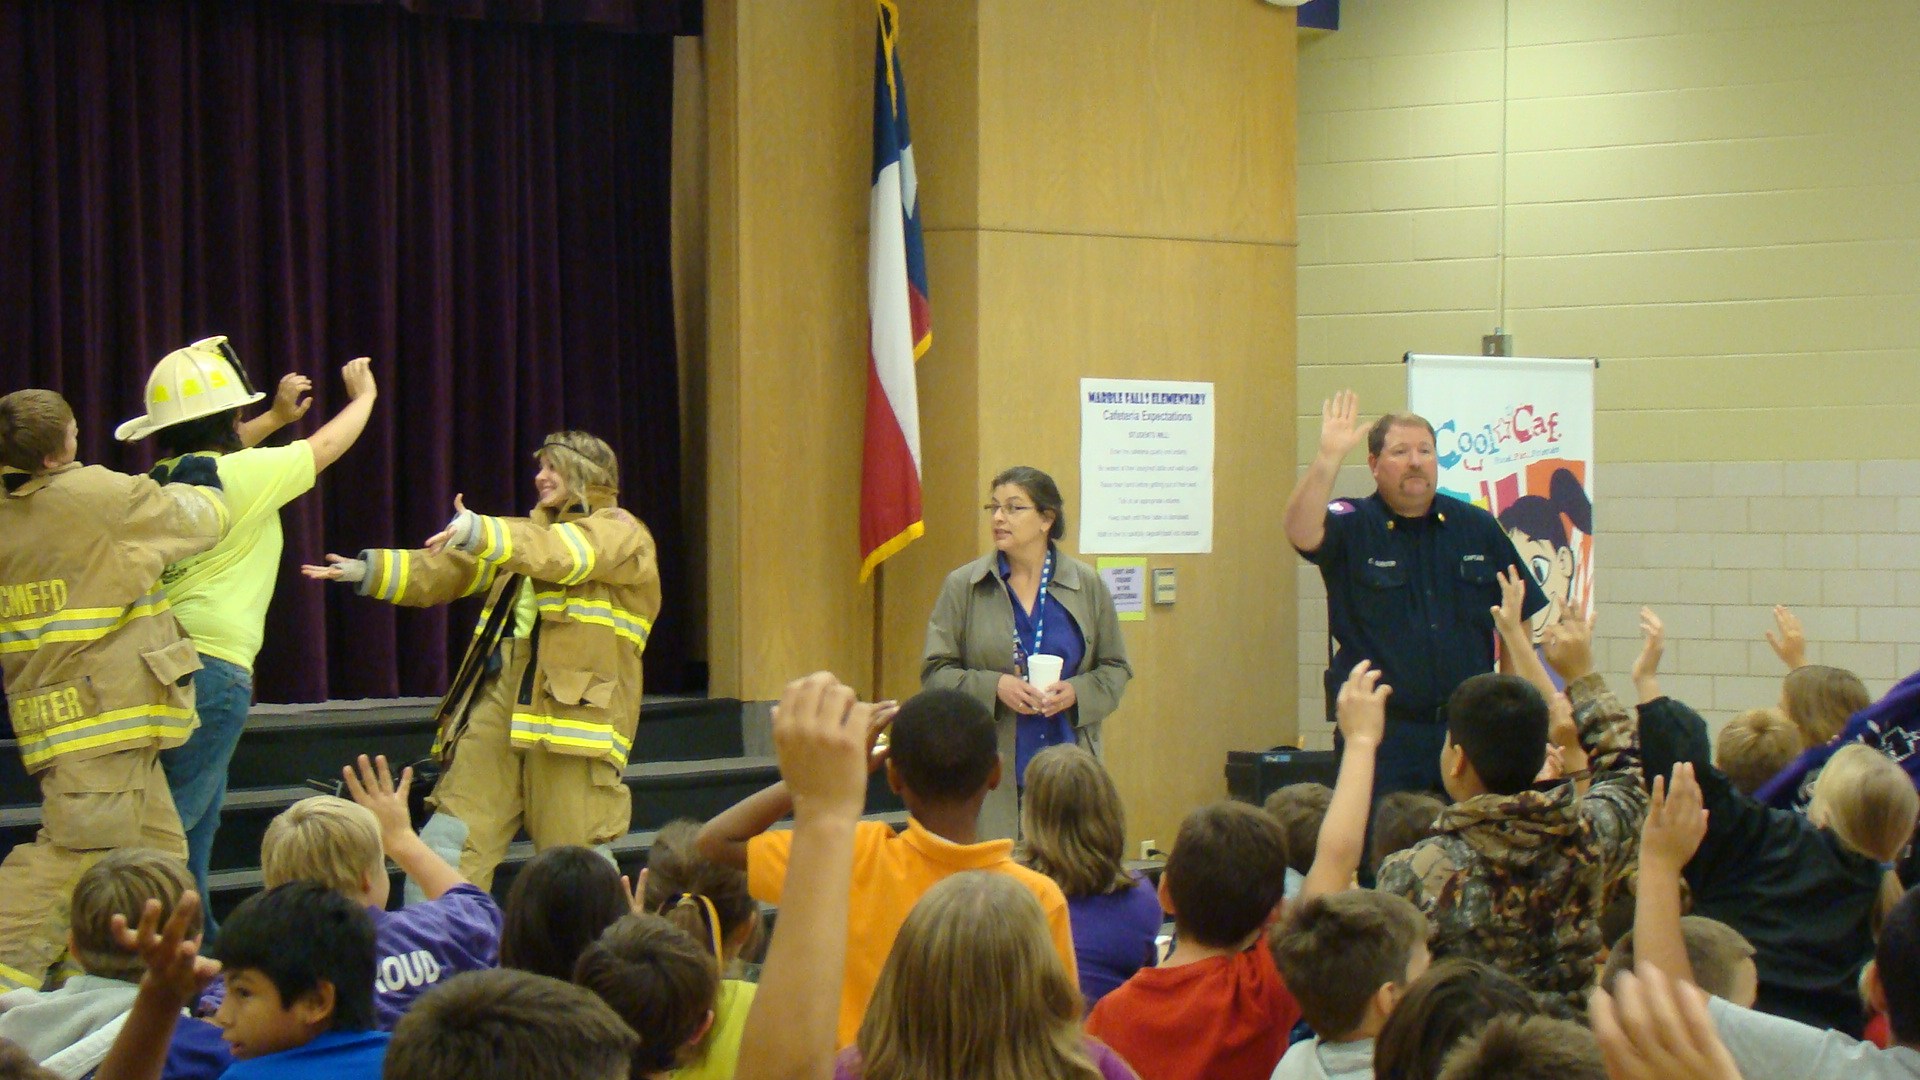 Firefighters speak at an event for children